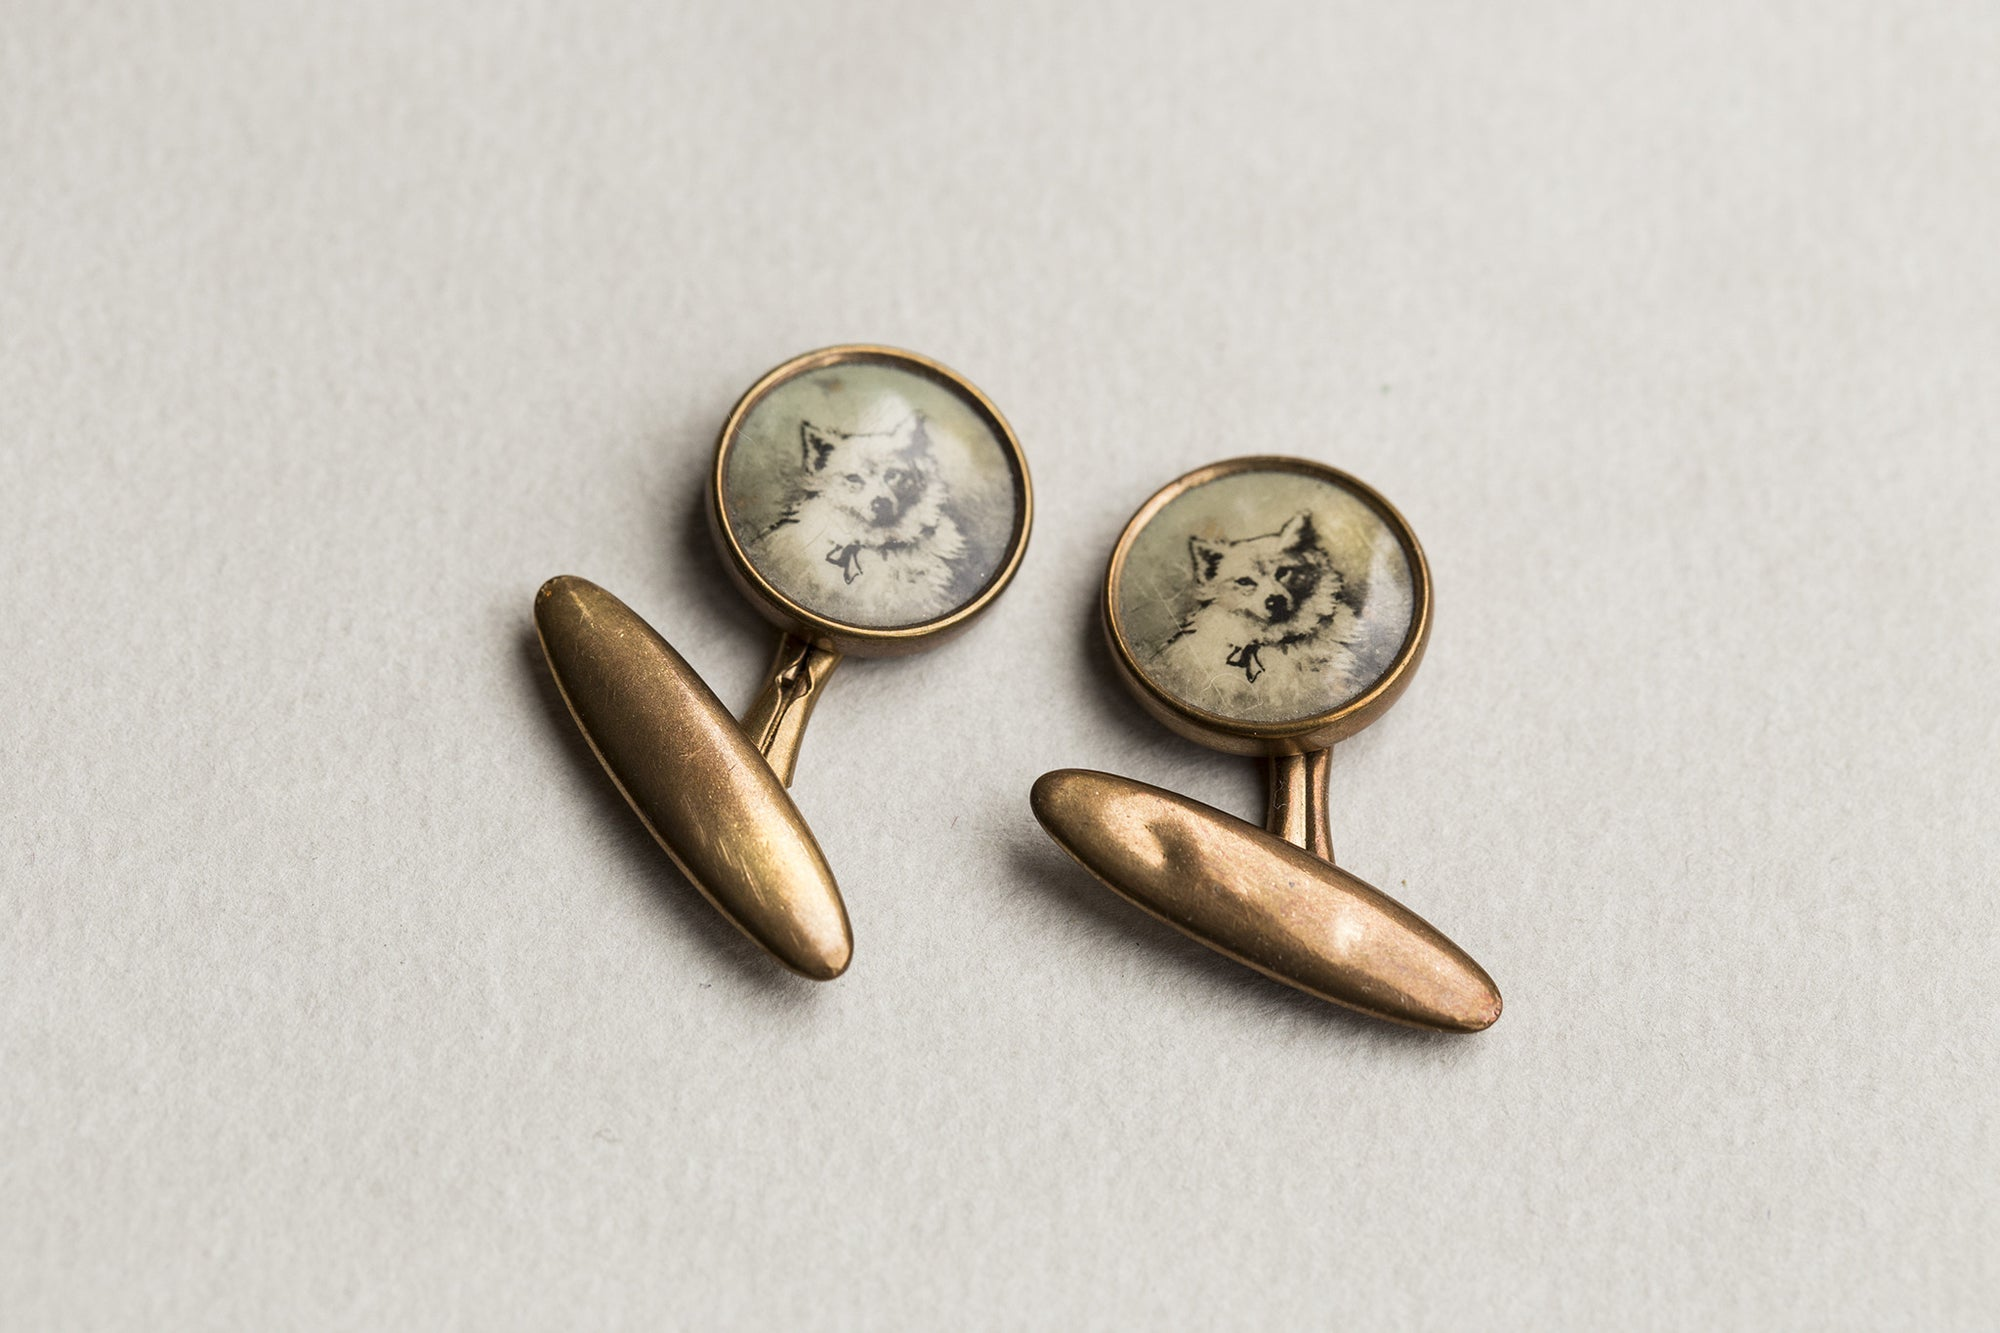 Vintage 1930 White Dog Samoyed Portrait Cufflinks